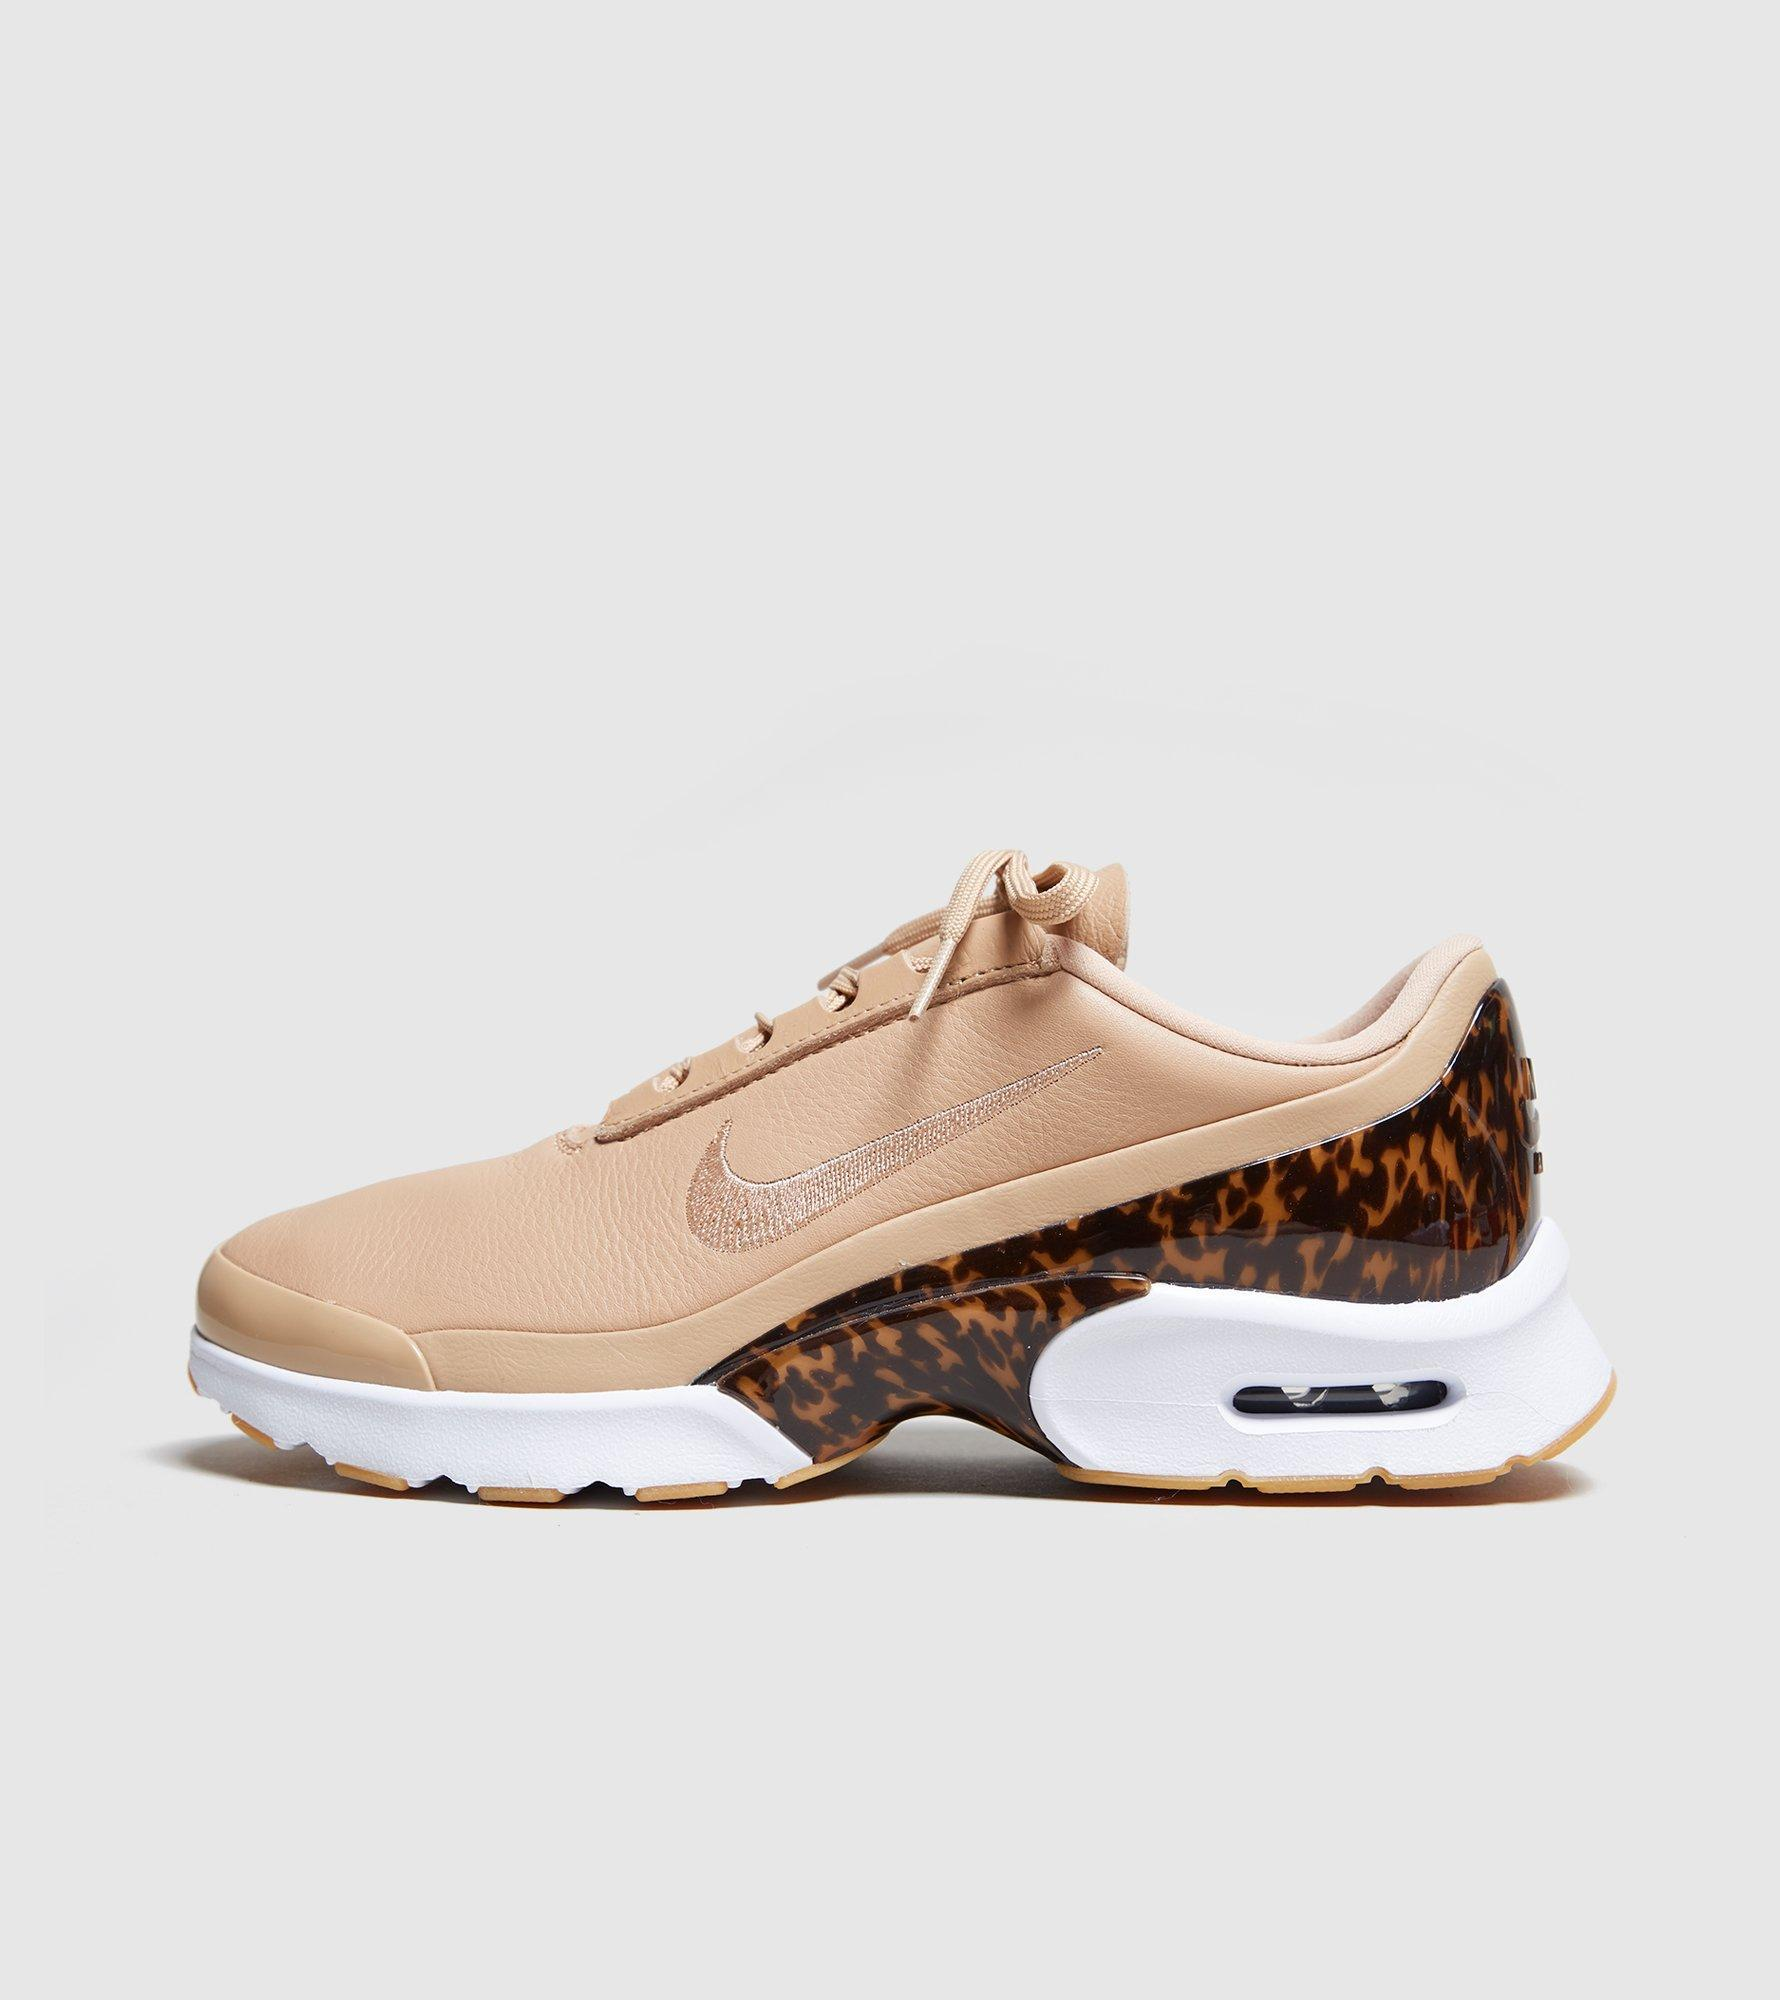 jewell women ★ nike air max jewell sneaker (women) @ deals price womens sneakers amp athletic shoes, enjoy free shipping on all orders [nike air max jewell sneaker (women)] shop with guaranteed low prices.